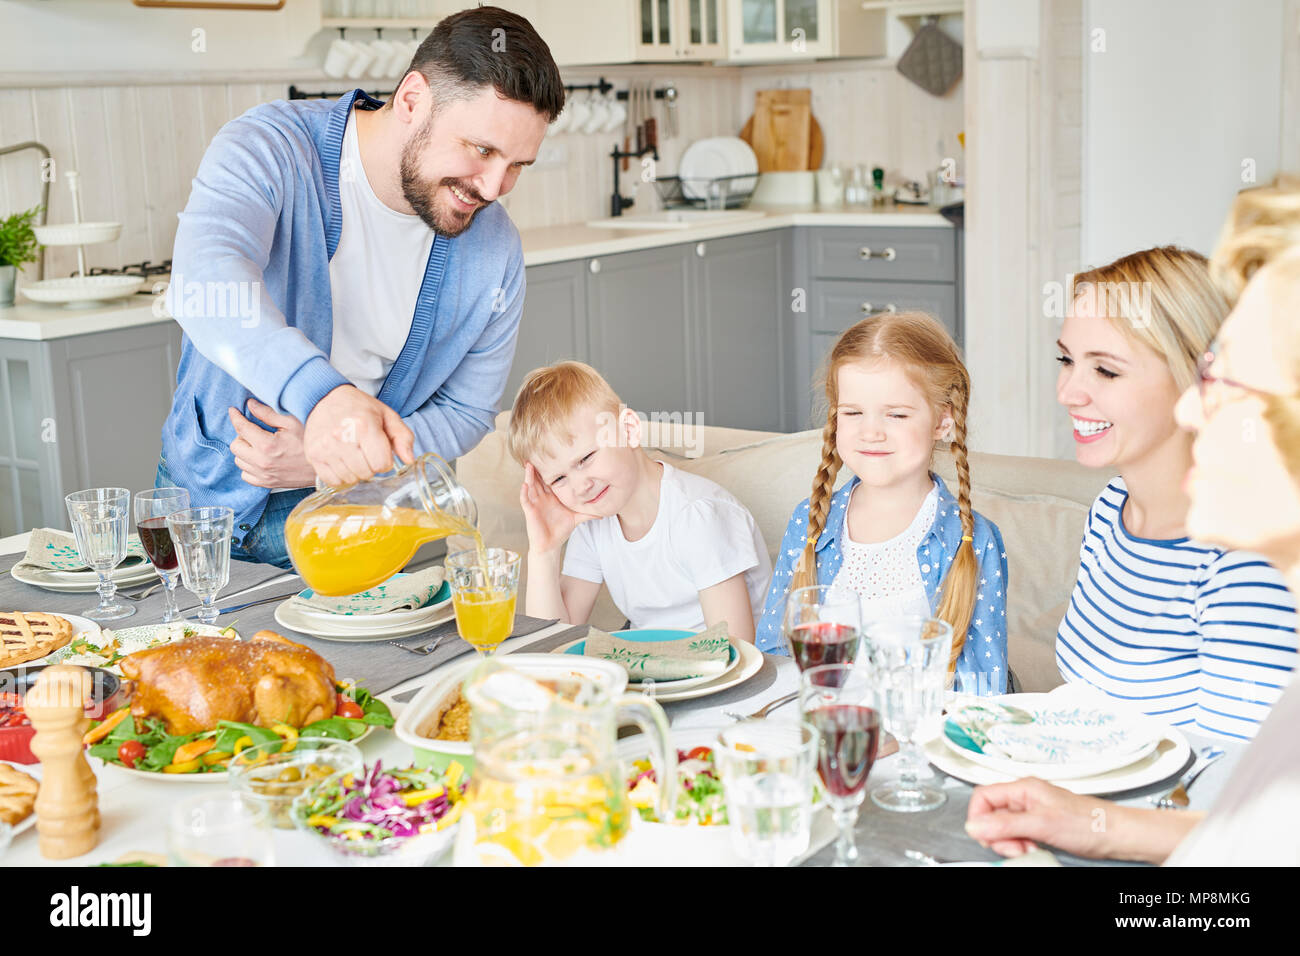 Happy Family at Dinner Table - Stock Image